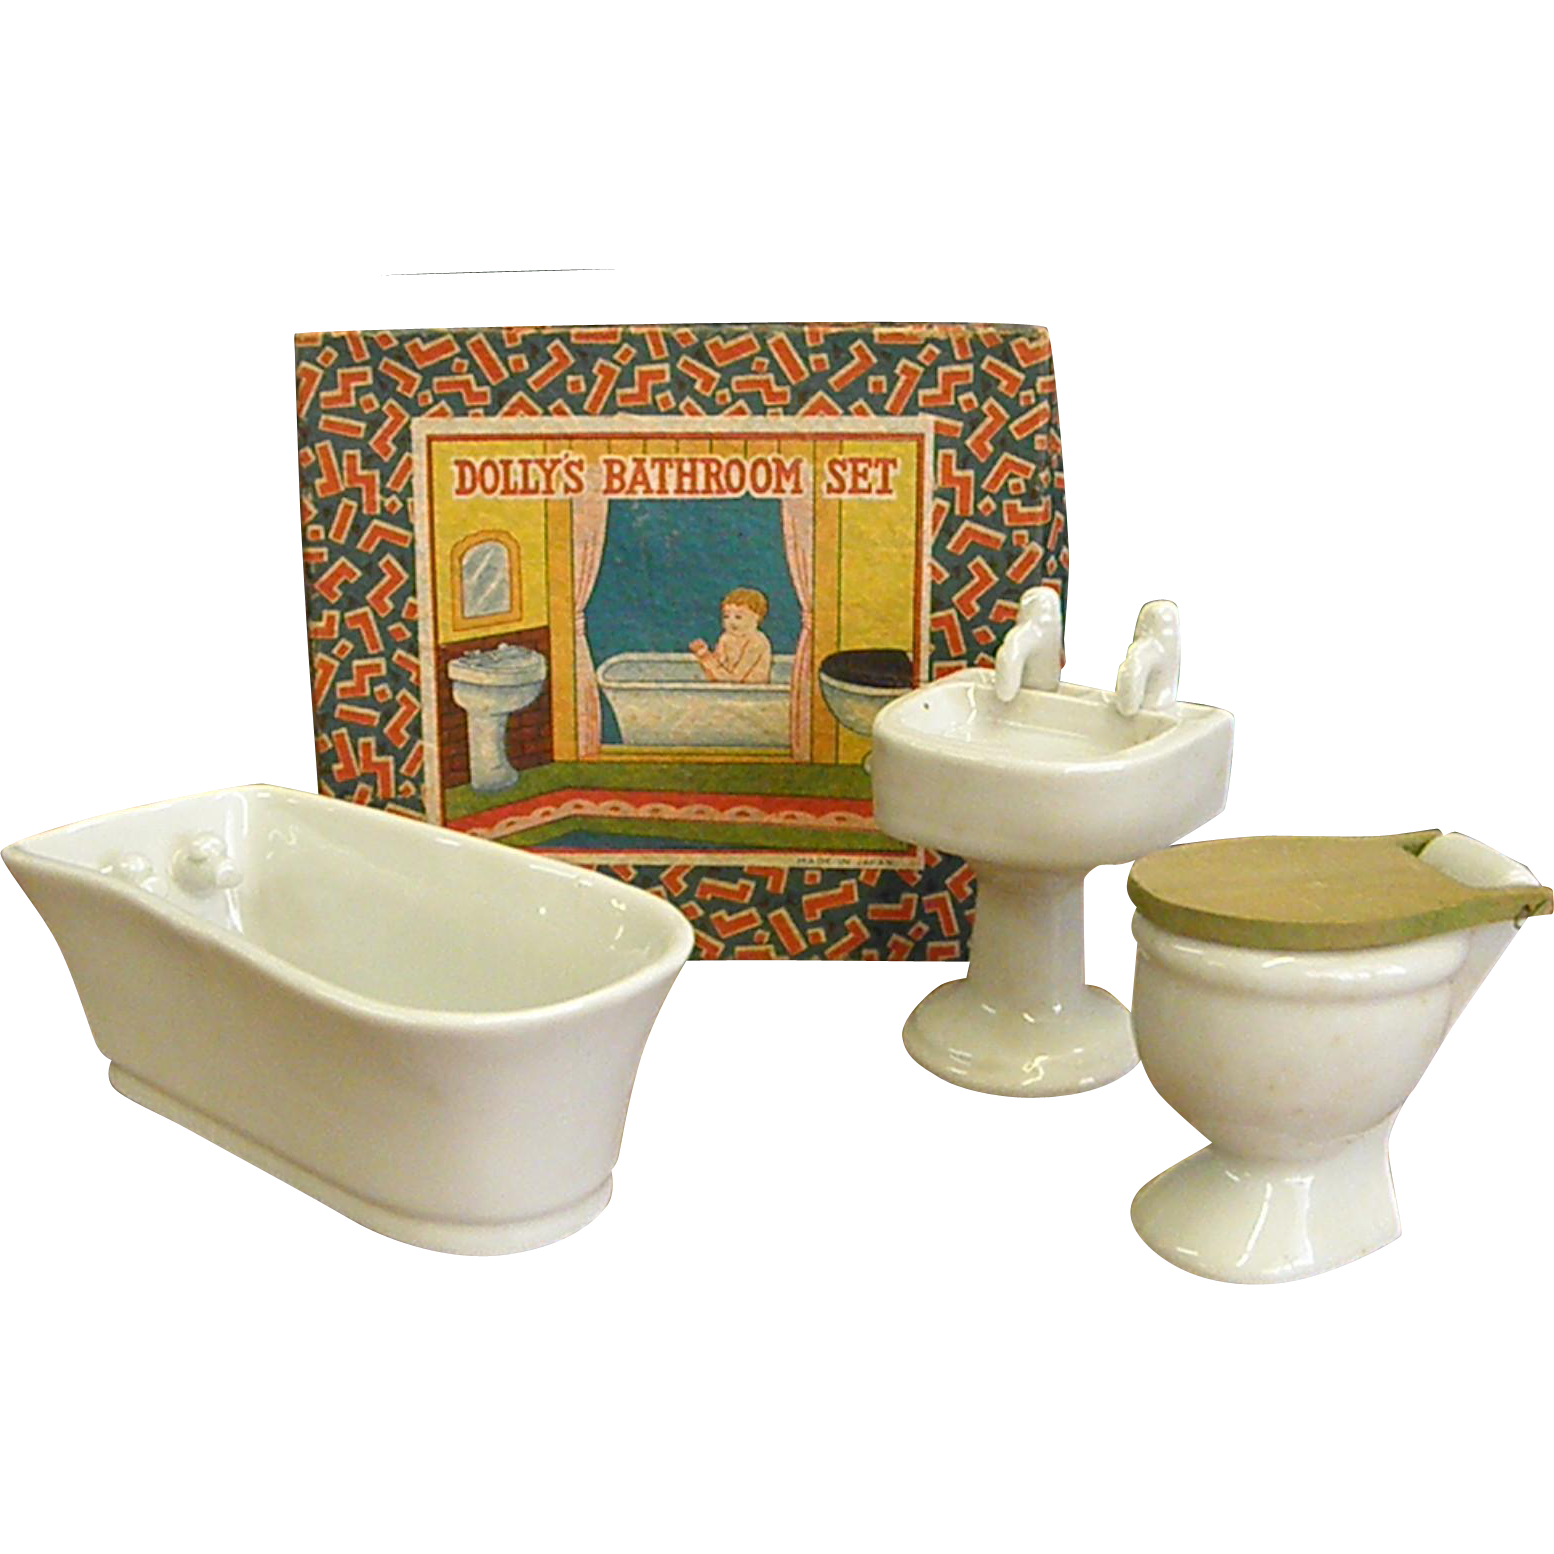 Wonderful 1920 30s Dollhouse Porcelain Bathroom Set In Original Box Bluebonnet Hill Estates